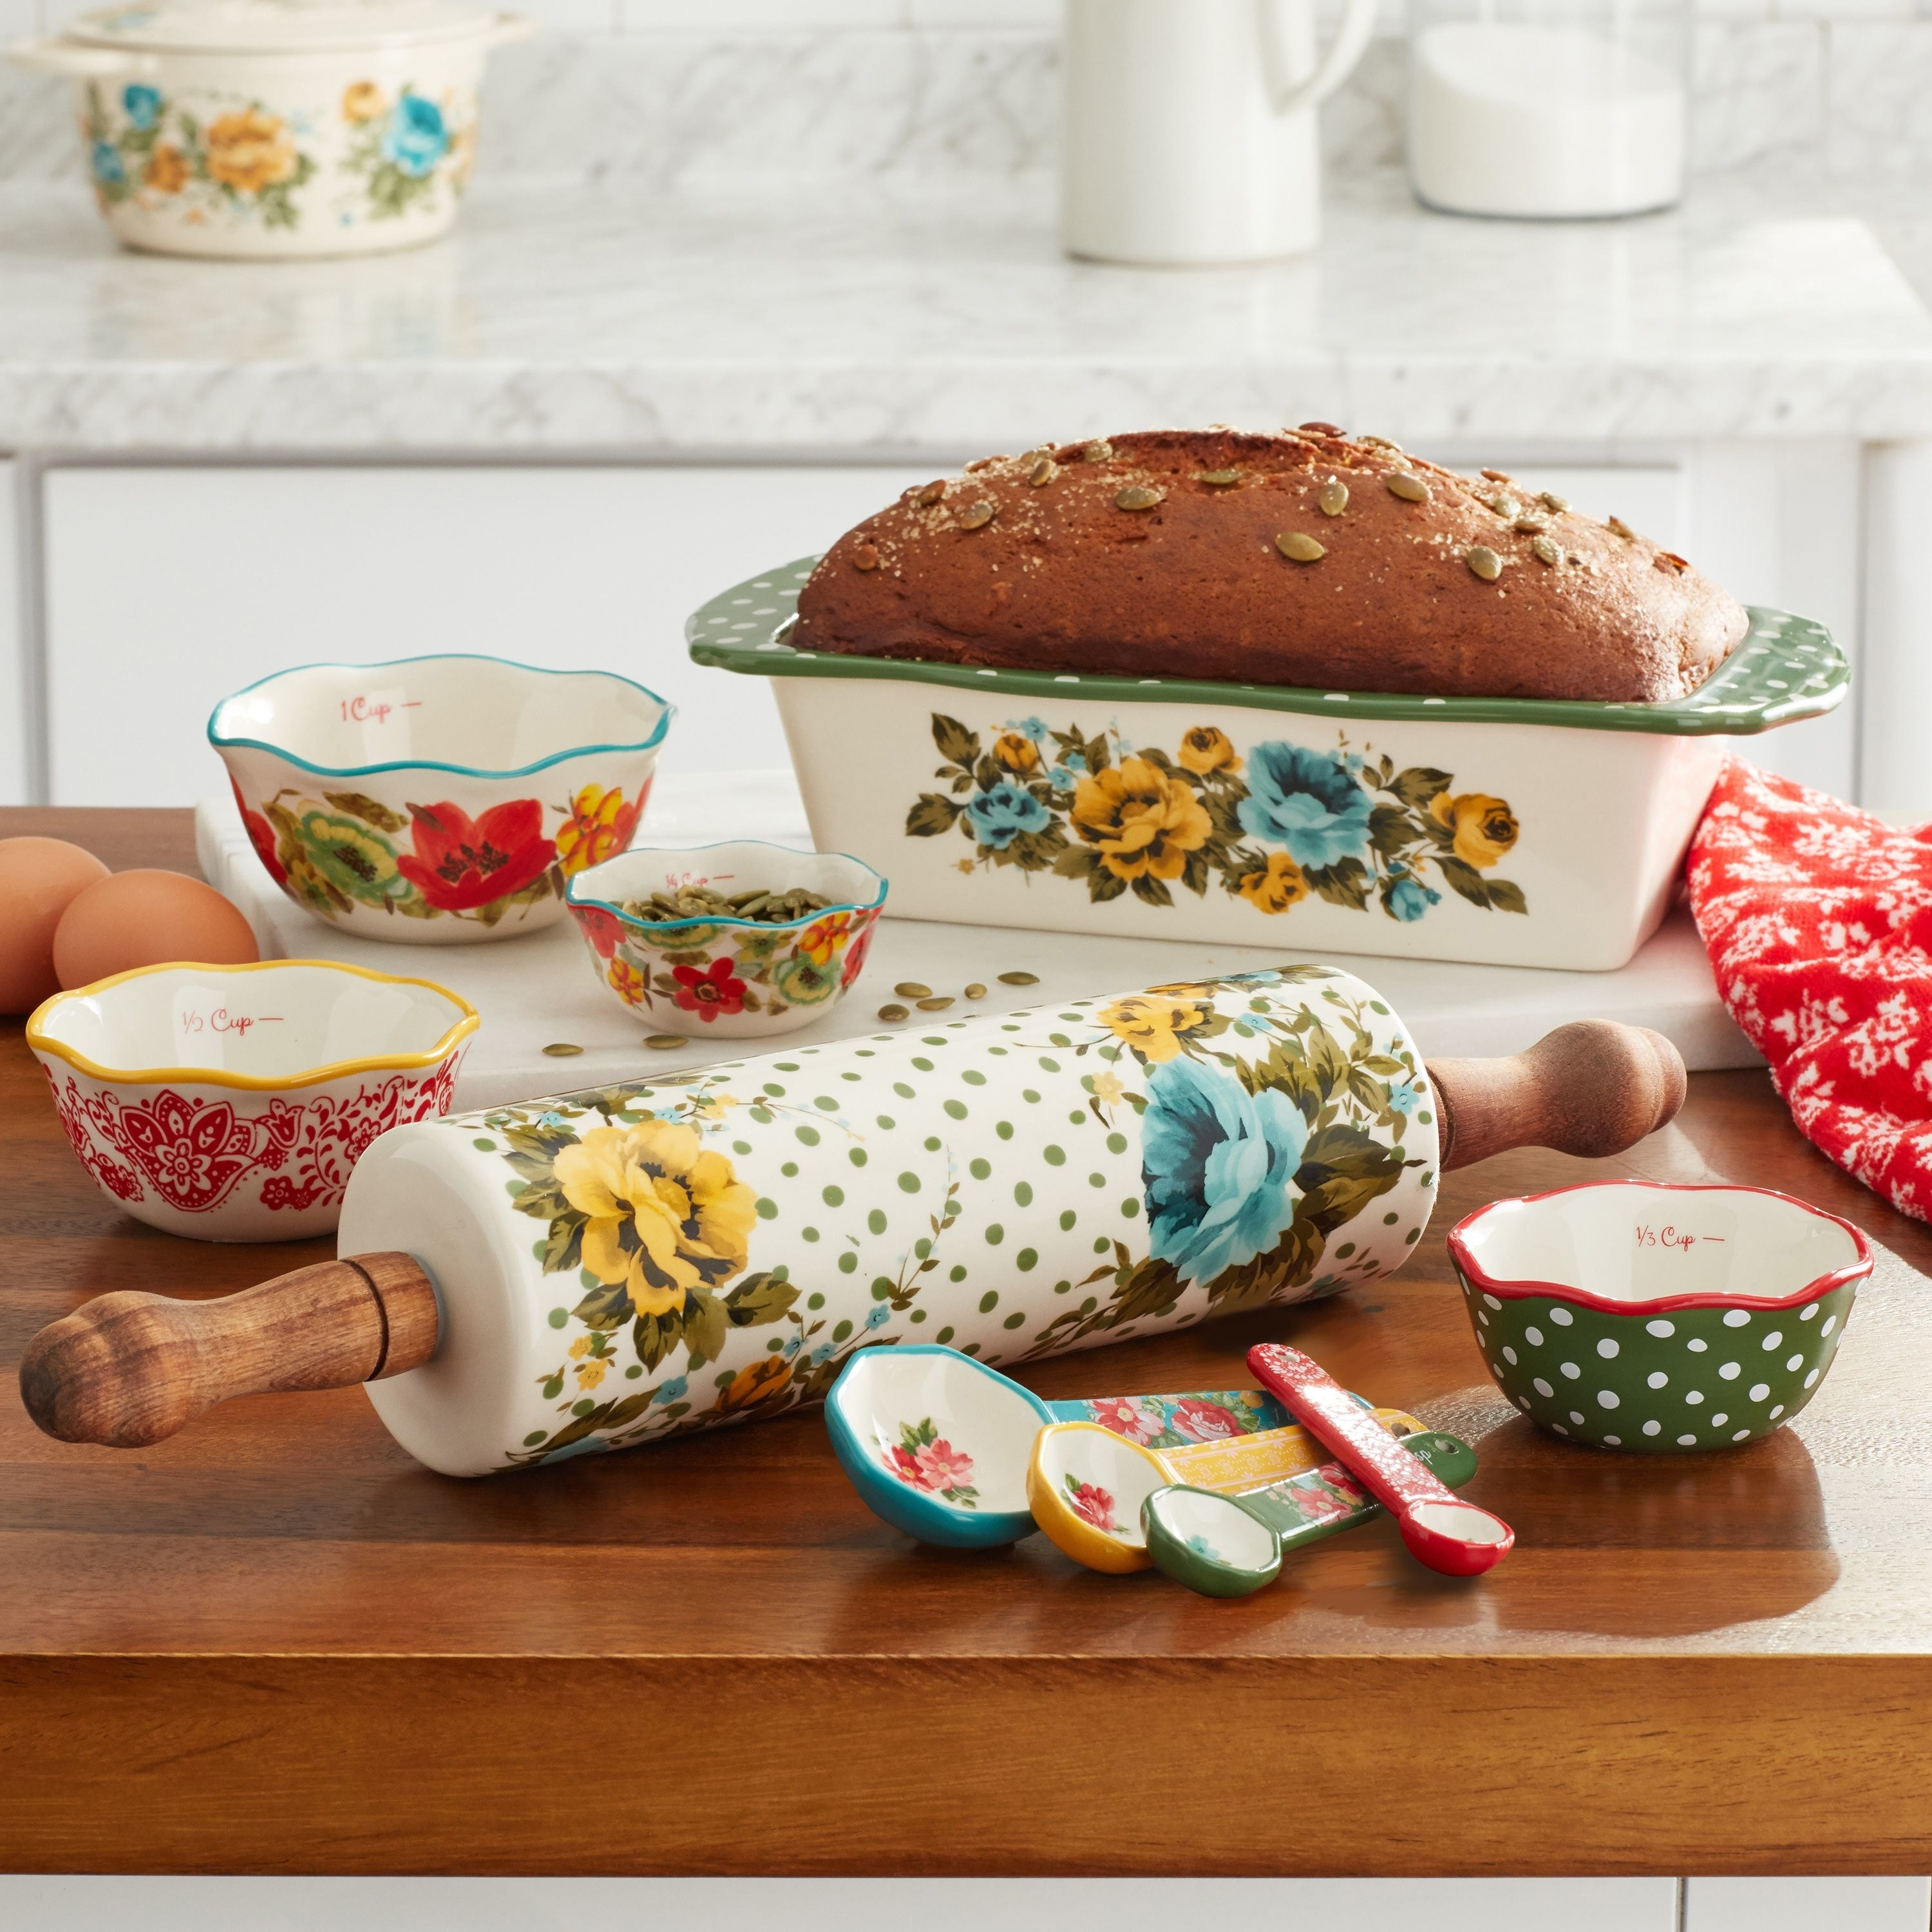 10 piece The Pioneer Woman bakeware set with floral pattern on a kitchen counter